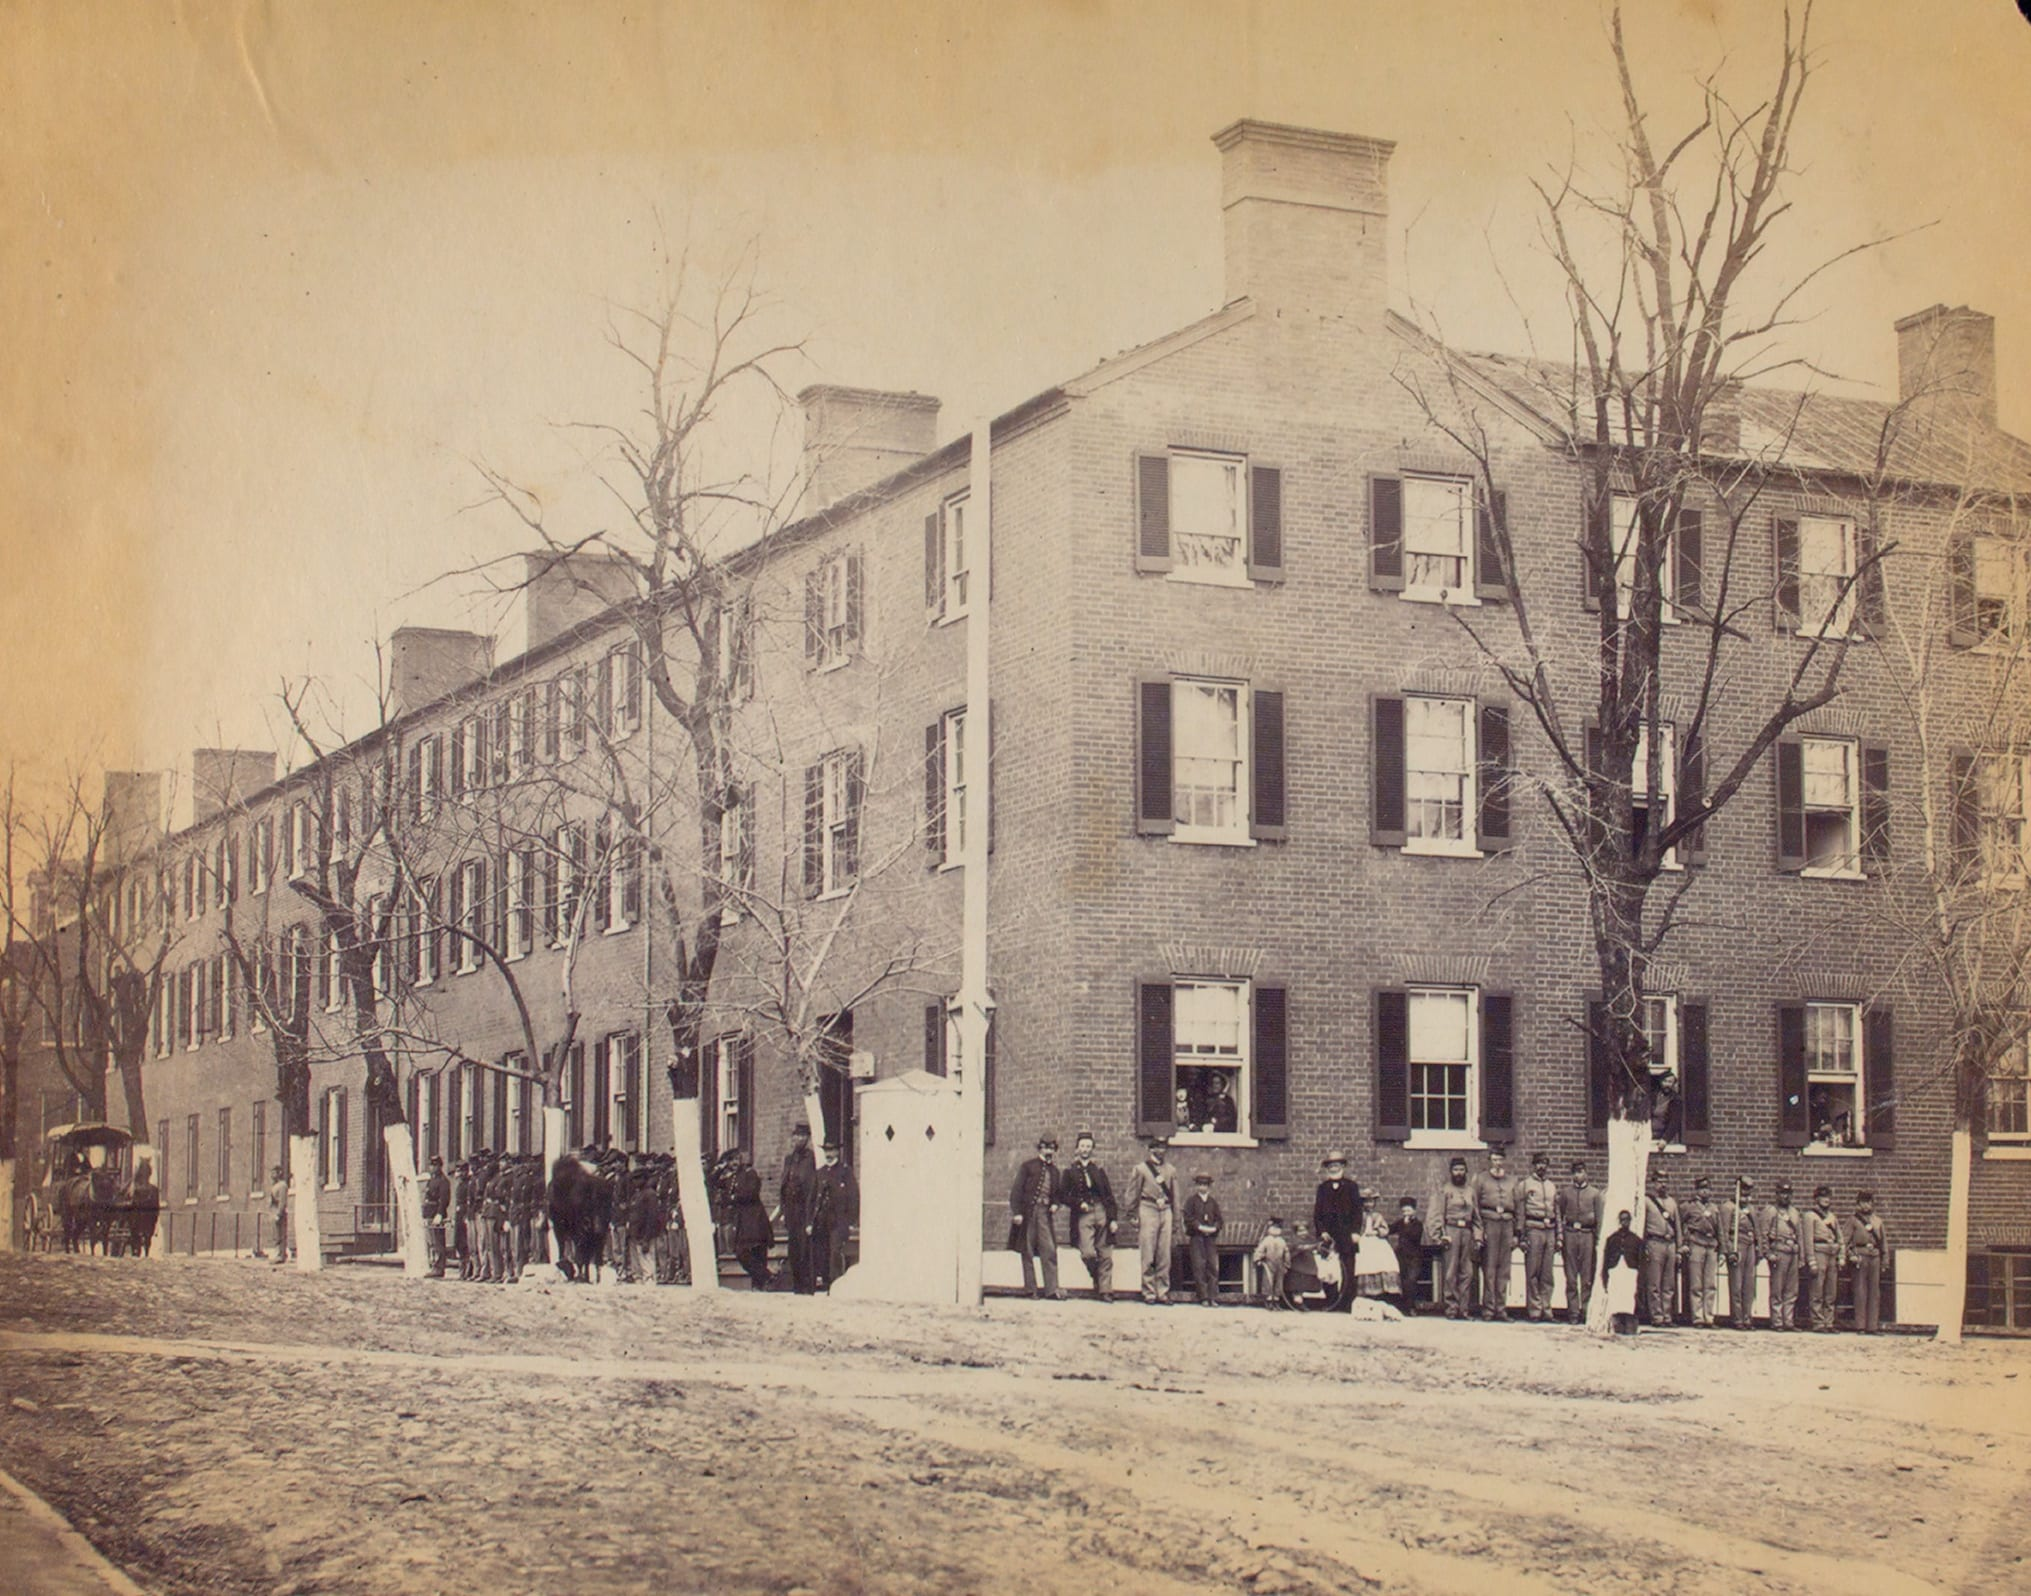 View on Pennsylvania Avenue, Washington, D.C.[Soldiers, civilians and children stand in front of a large brick corner building.]